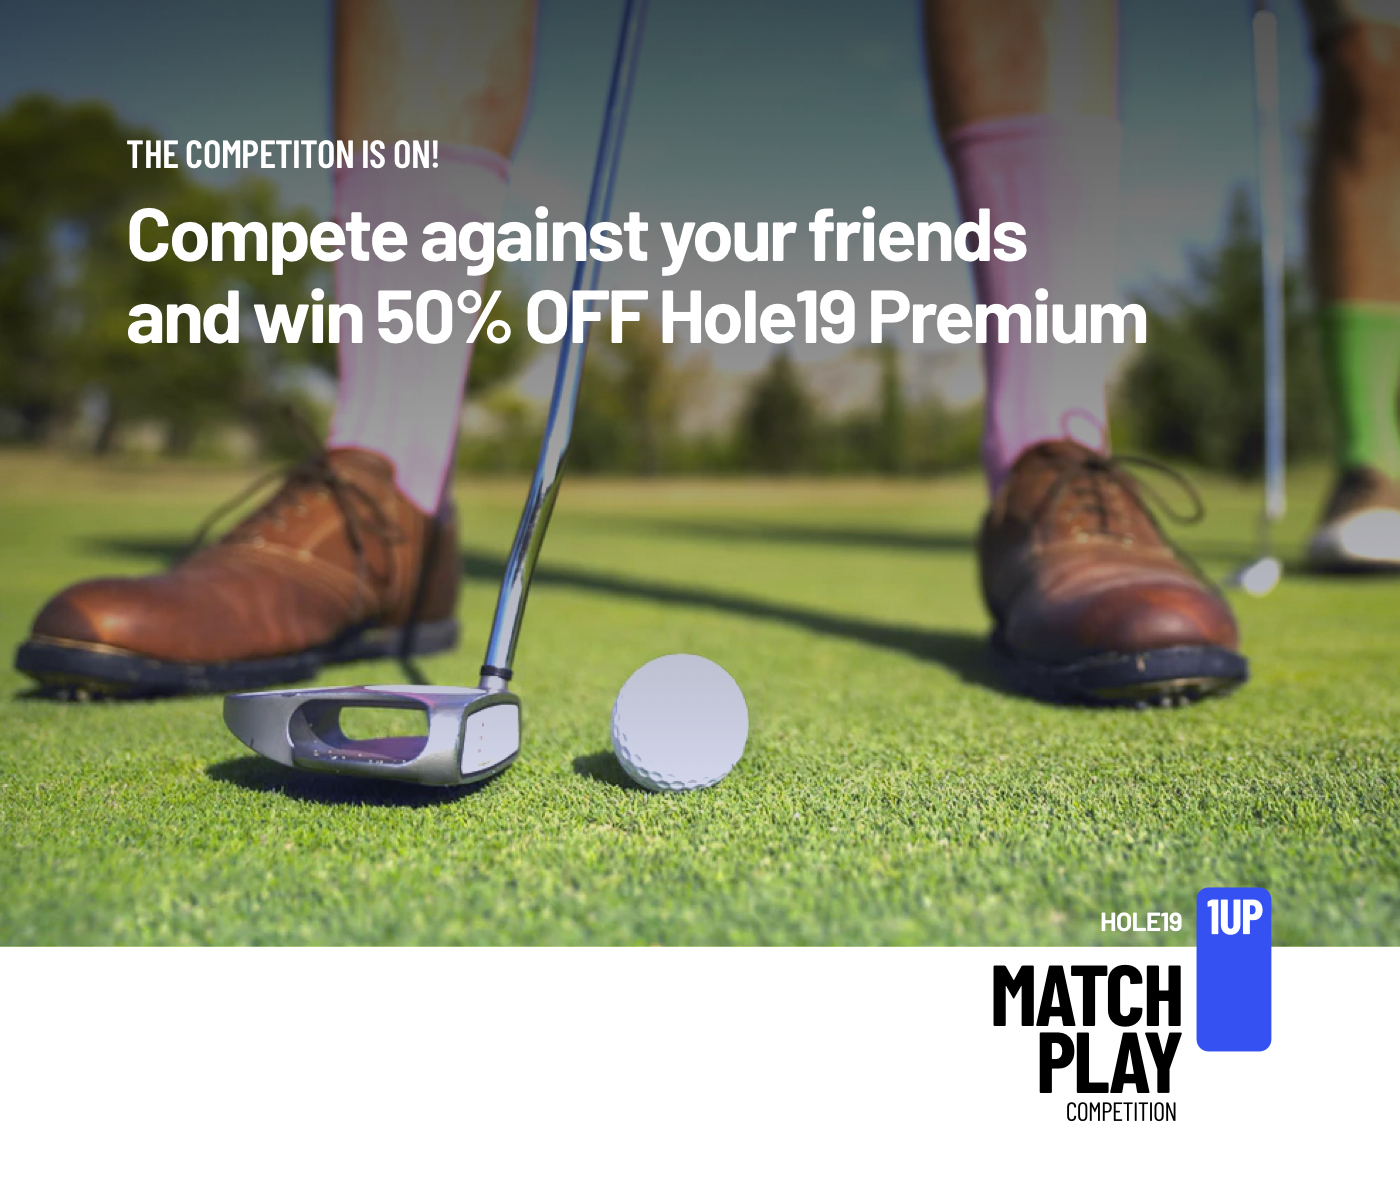 Match Play Competition